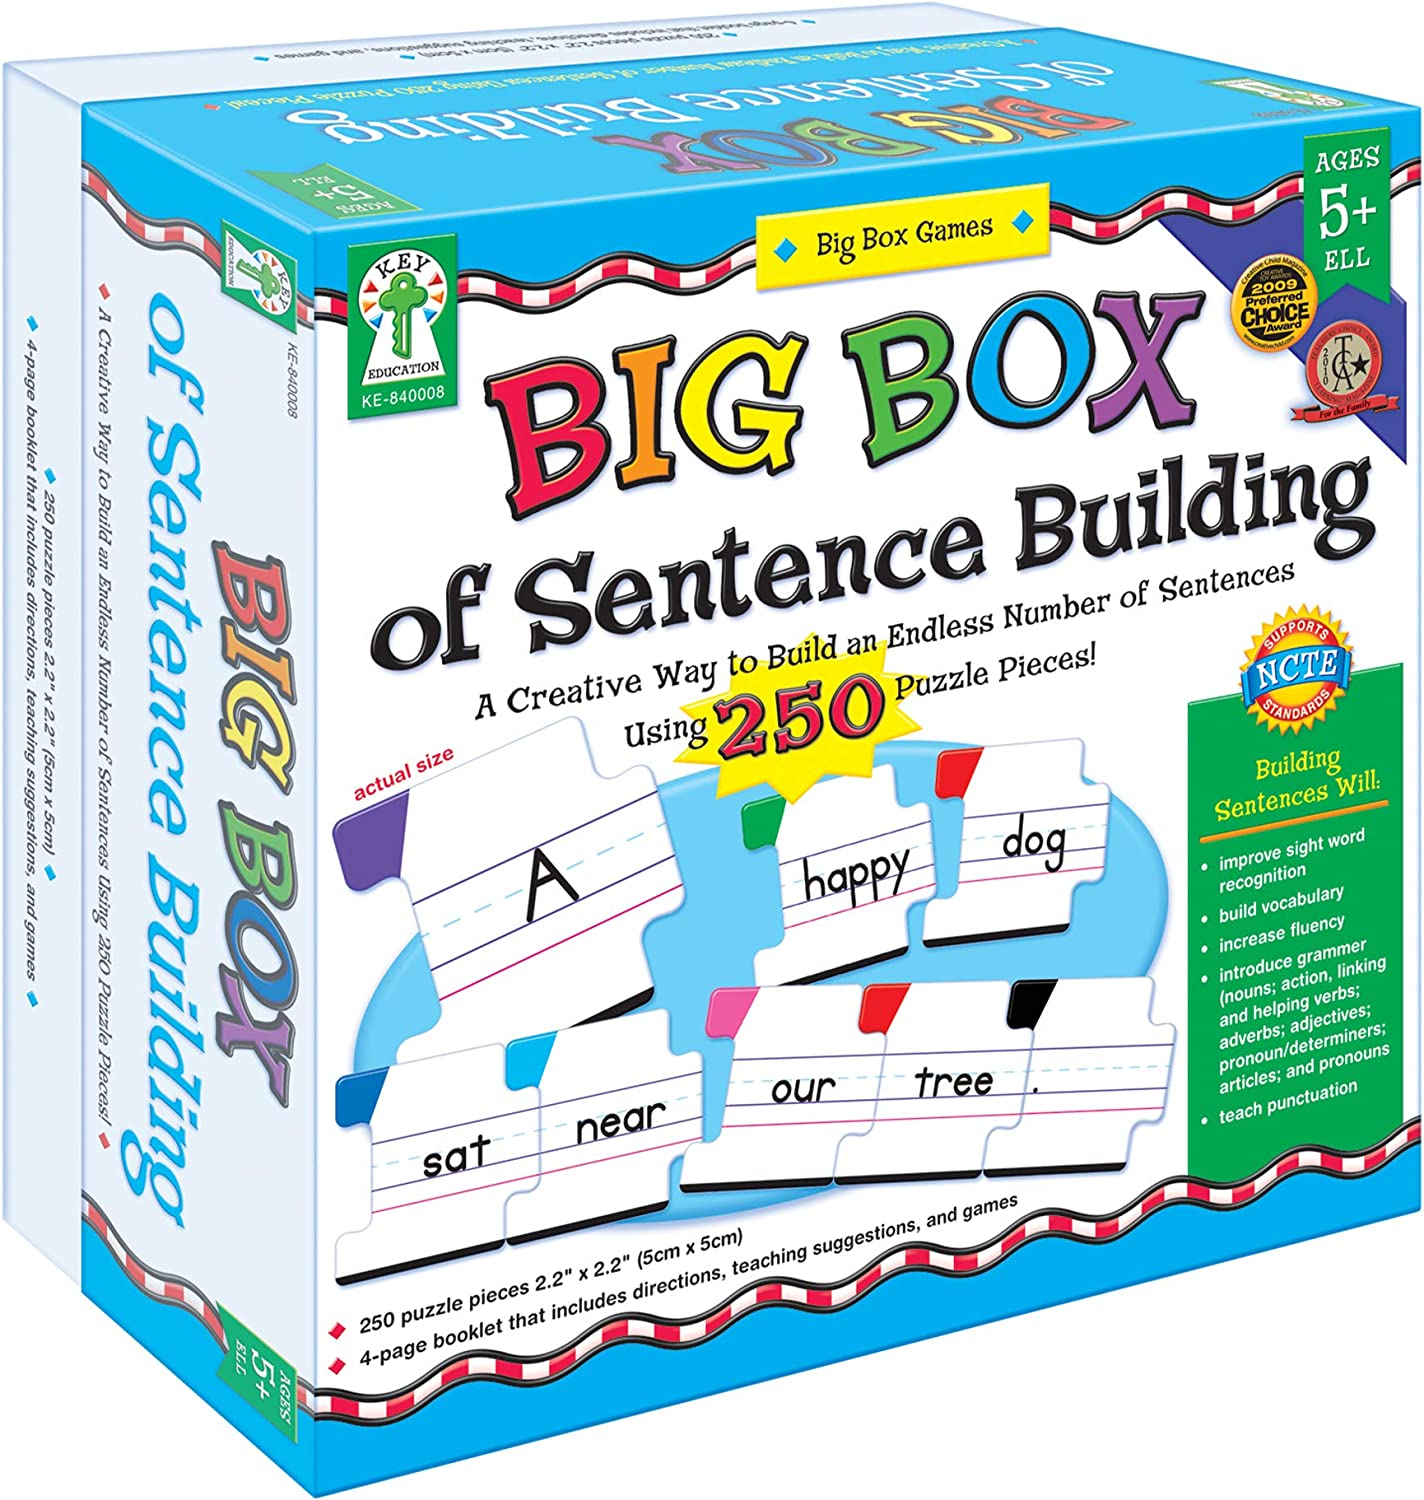 Key Education Publishing Big Box of Sentence Building Games Learning Materials for Age 5 and Up, 840008 : Books : Office Products